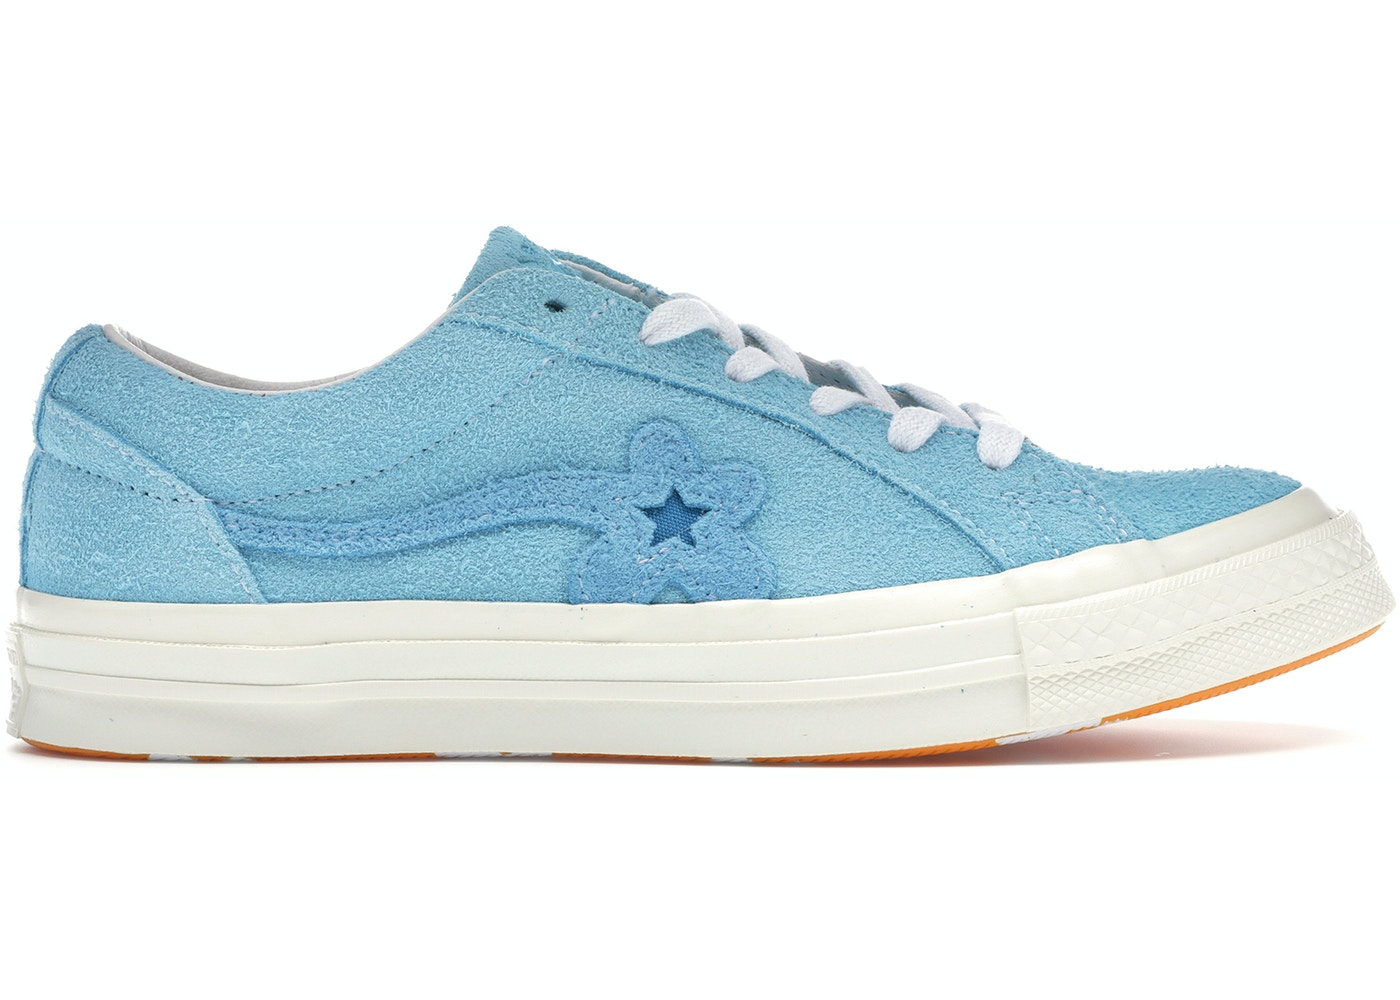 e0a914279484 Converse One Star Ox Tyler the Creator Golf Le Fleur Bachelor Blue - 160326C